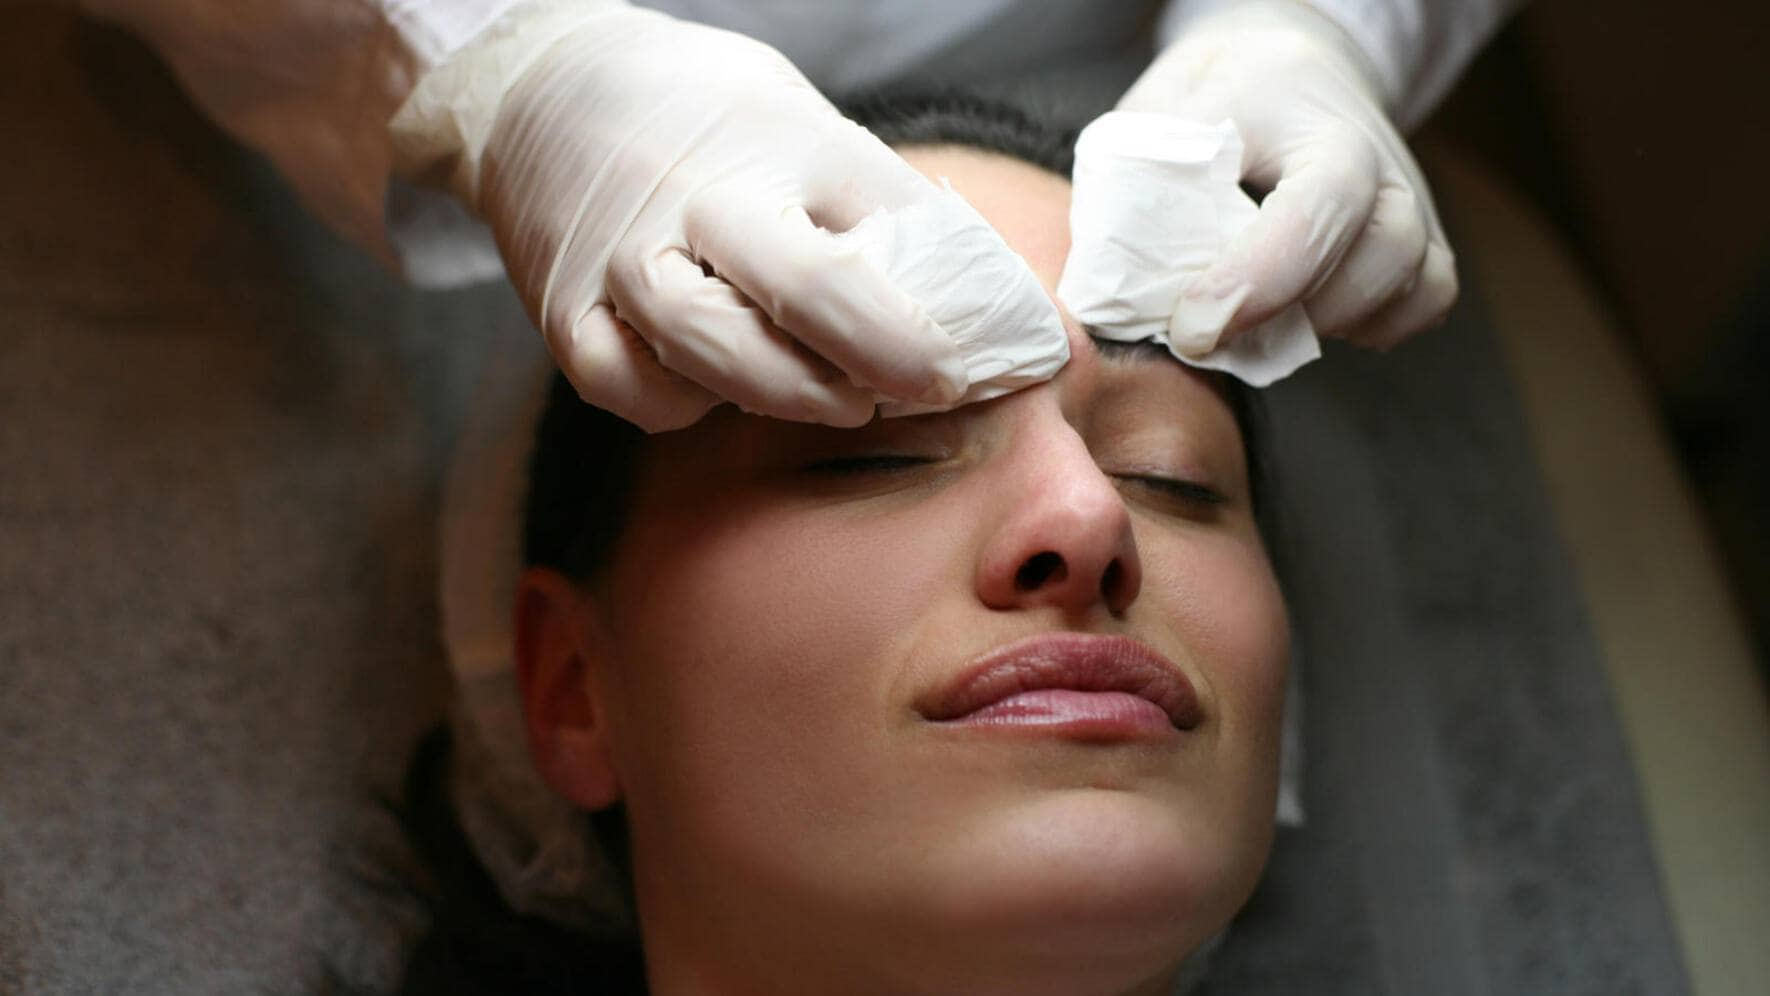 Midsection of a beautician cleaning young females face.